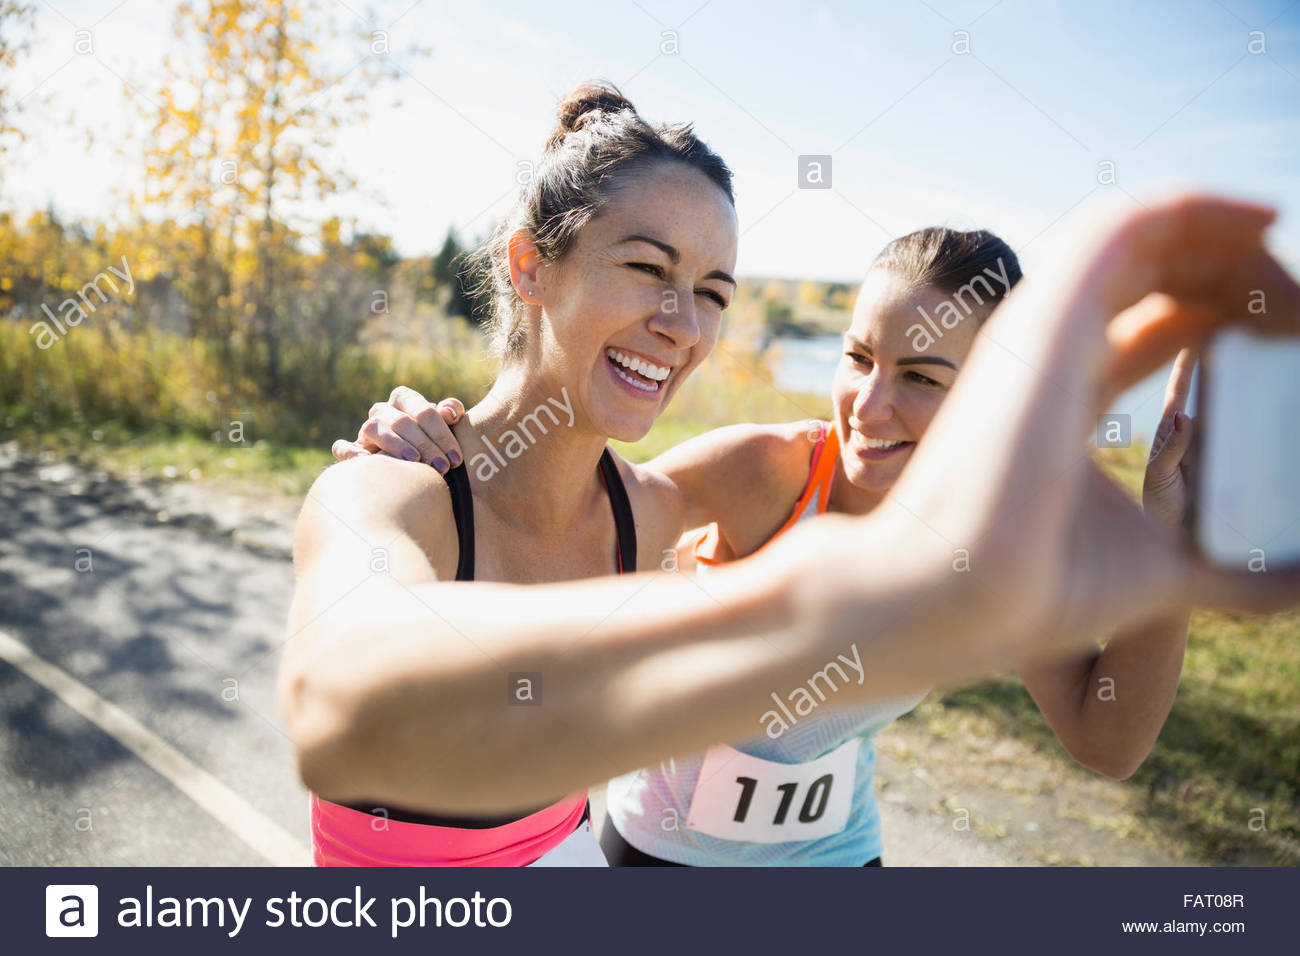 Laughing runners taking selfie on sunny path Stock Photo